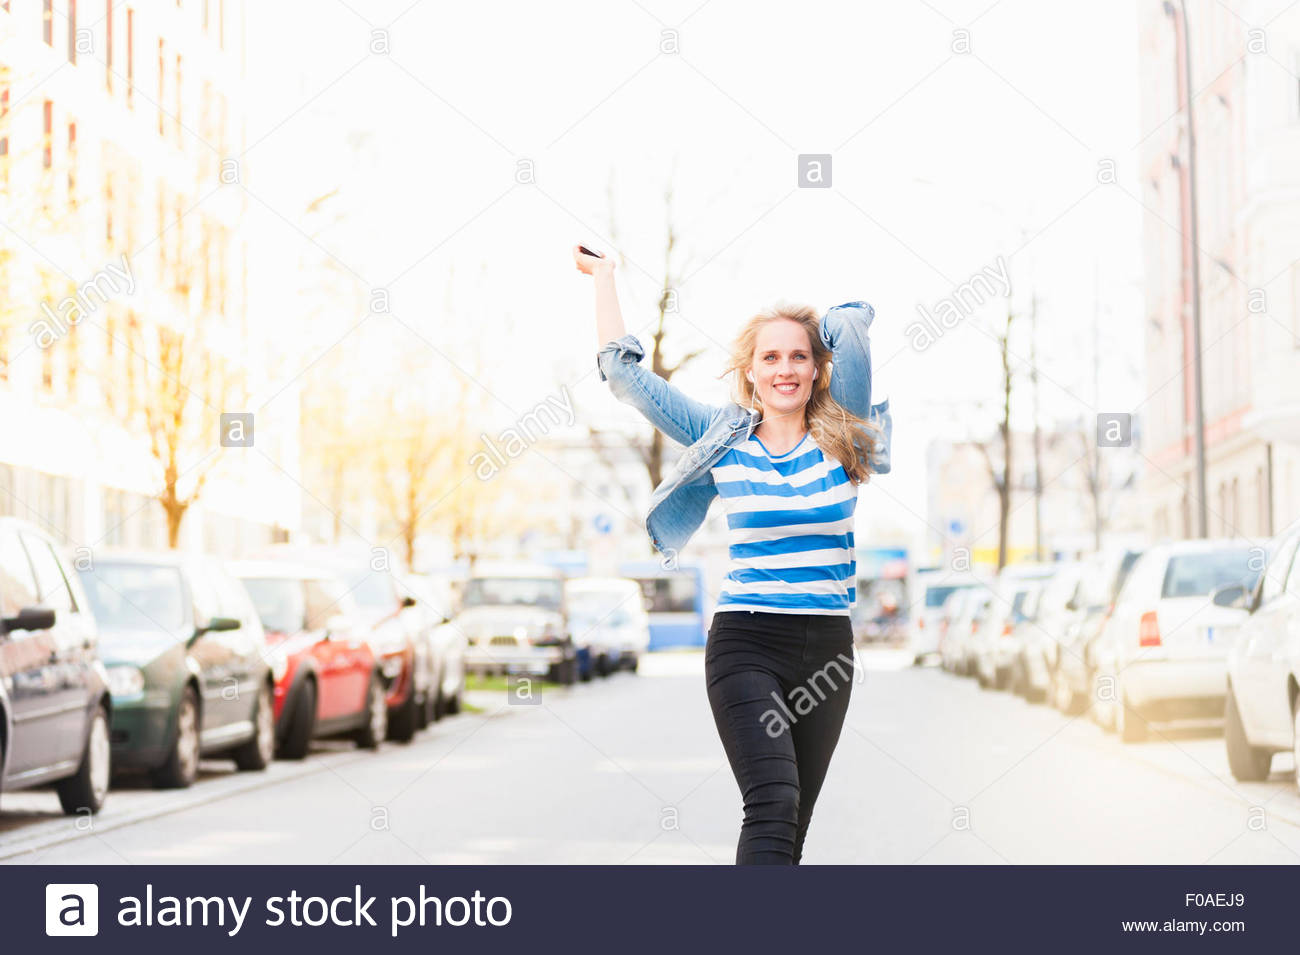 Excited young woman, dancing along street - Stock Image